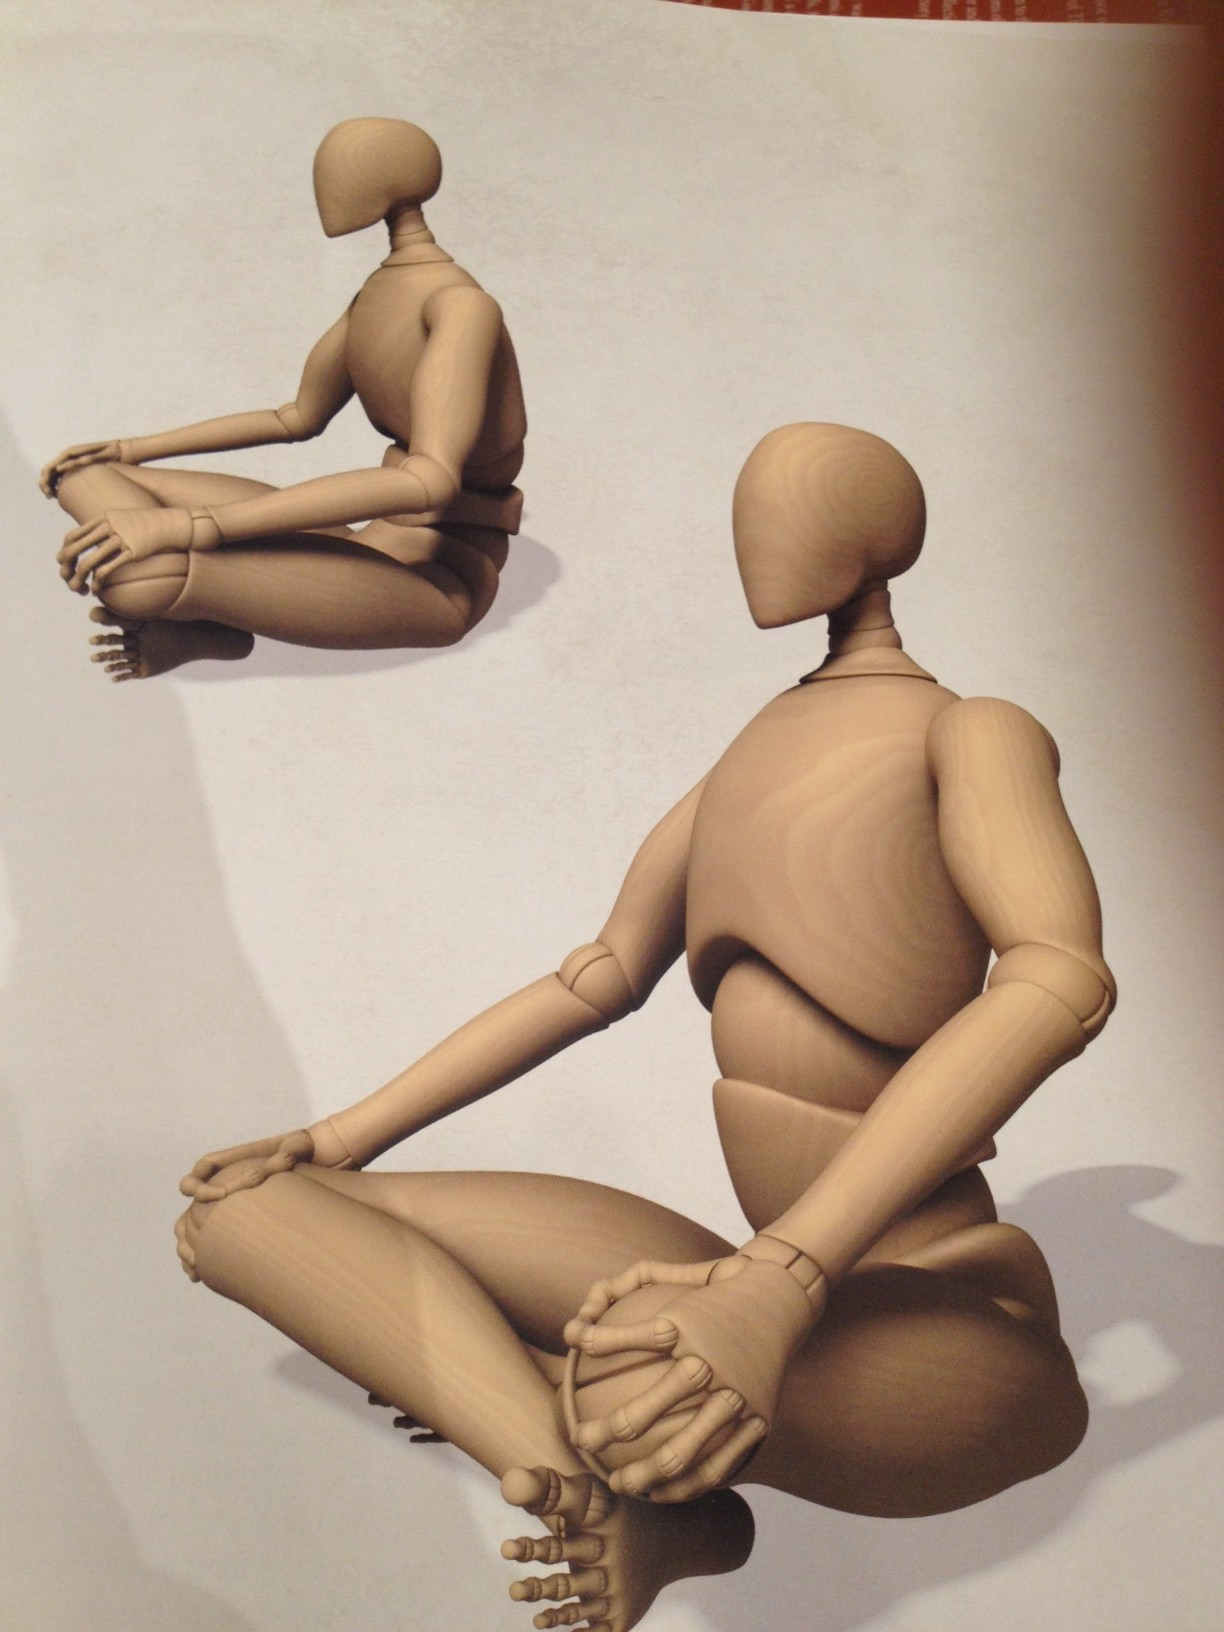 Sitting in SukhAsana, the robot contemplates its next action!